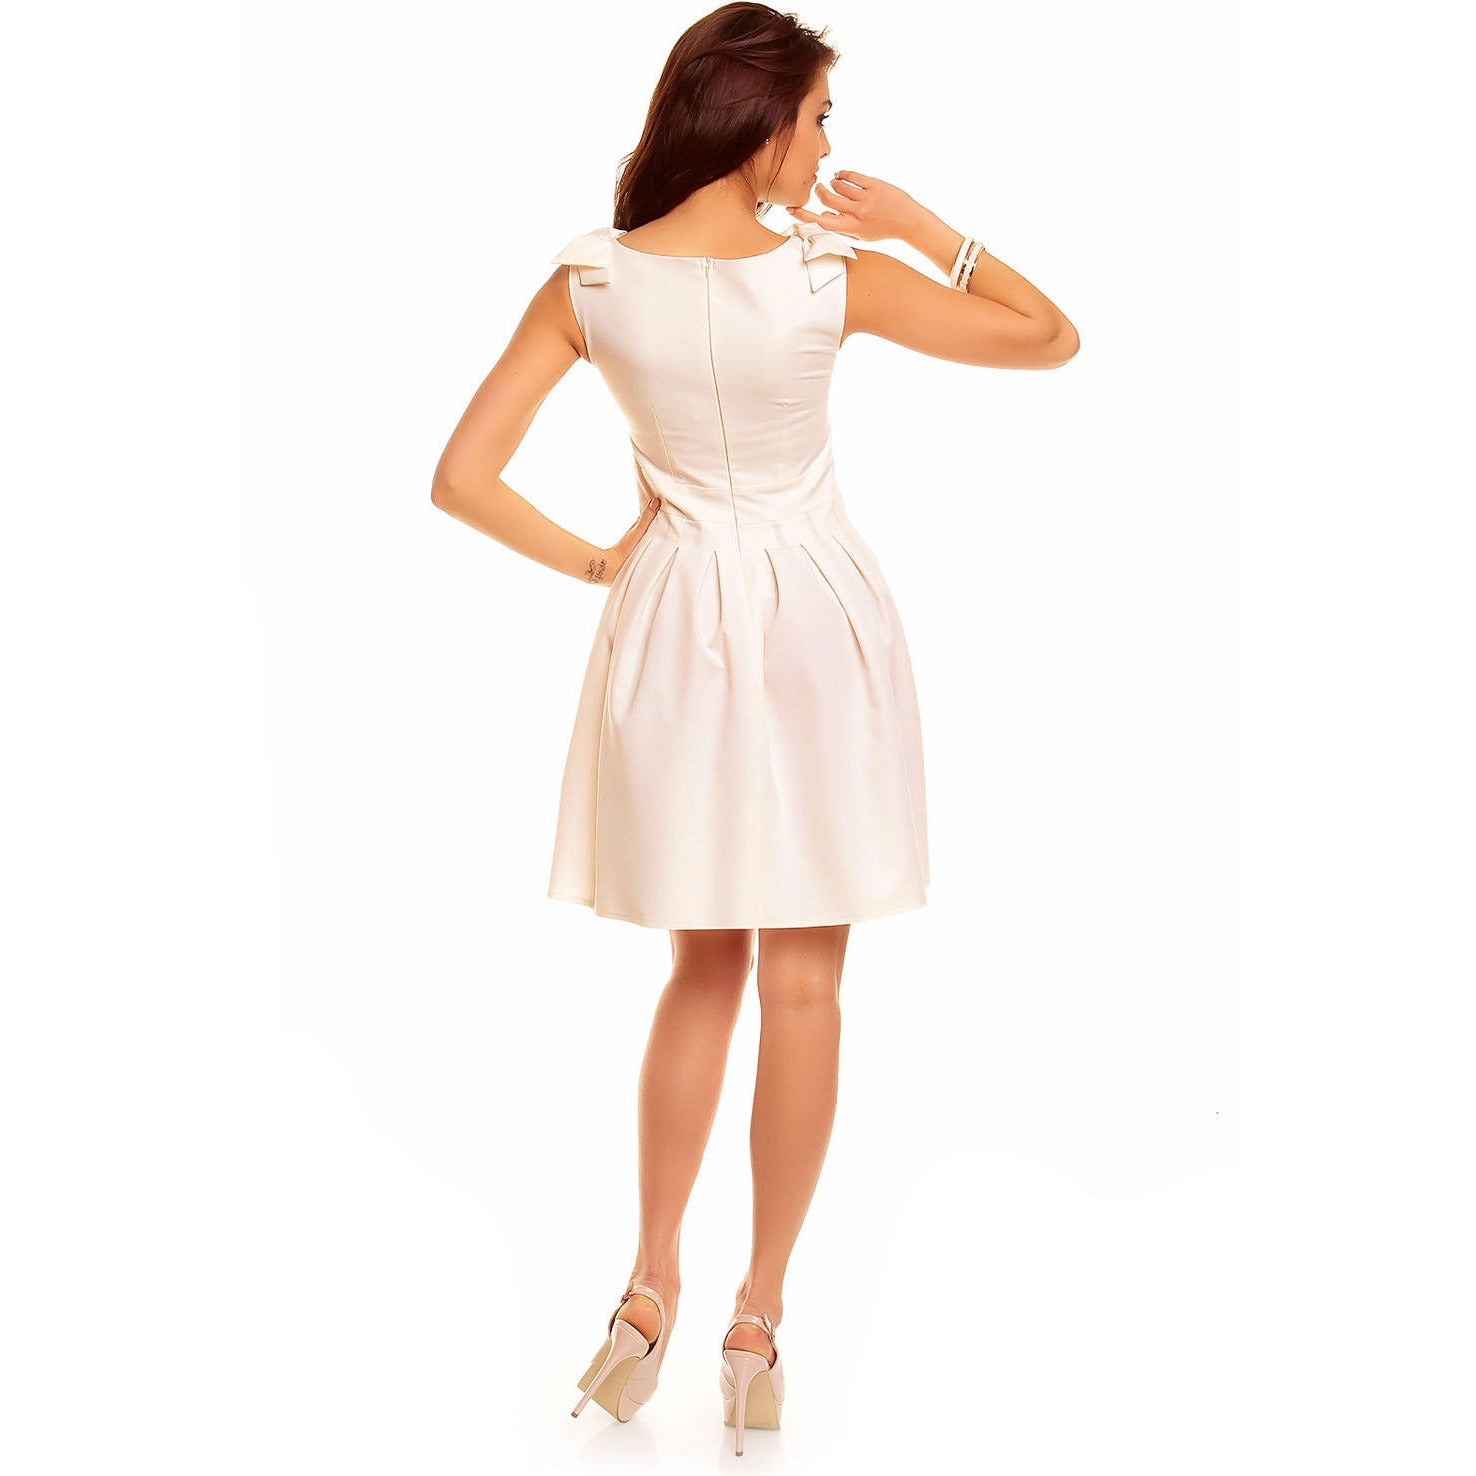 Creamy Flippy Dress With Bend Sleeveless Shoulder LAVELIQ - LAVELIQ - 4